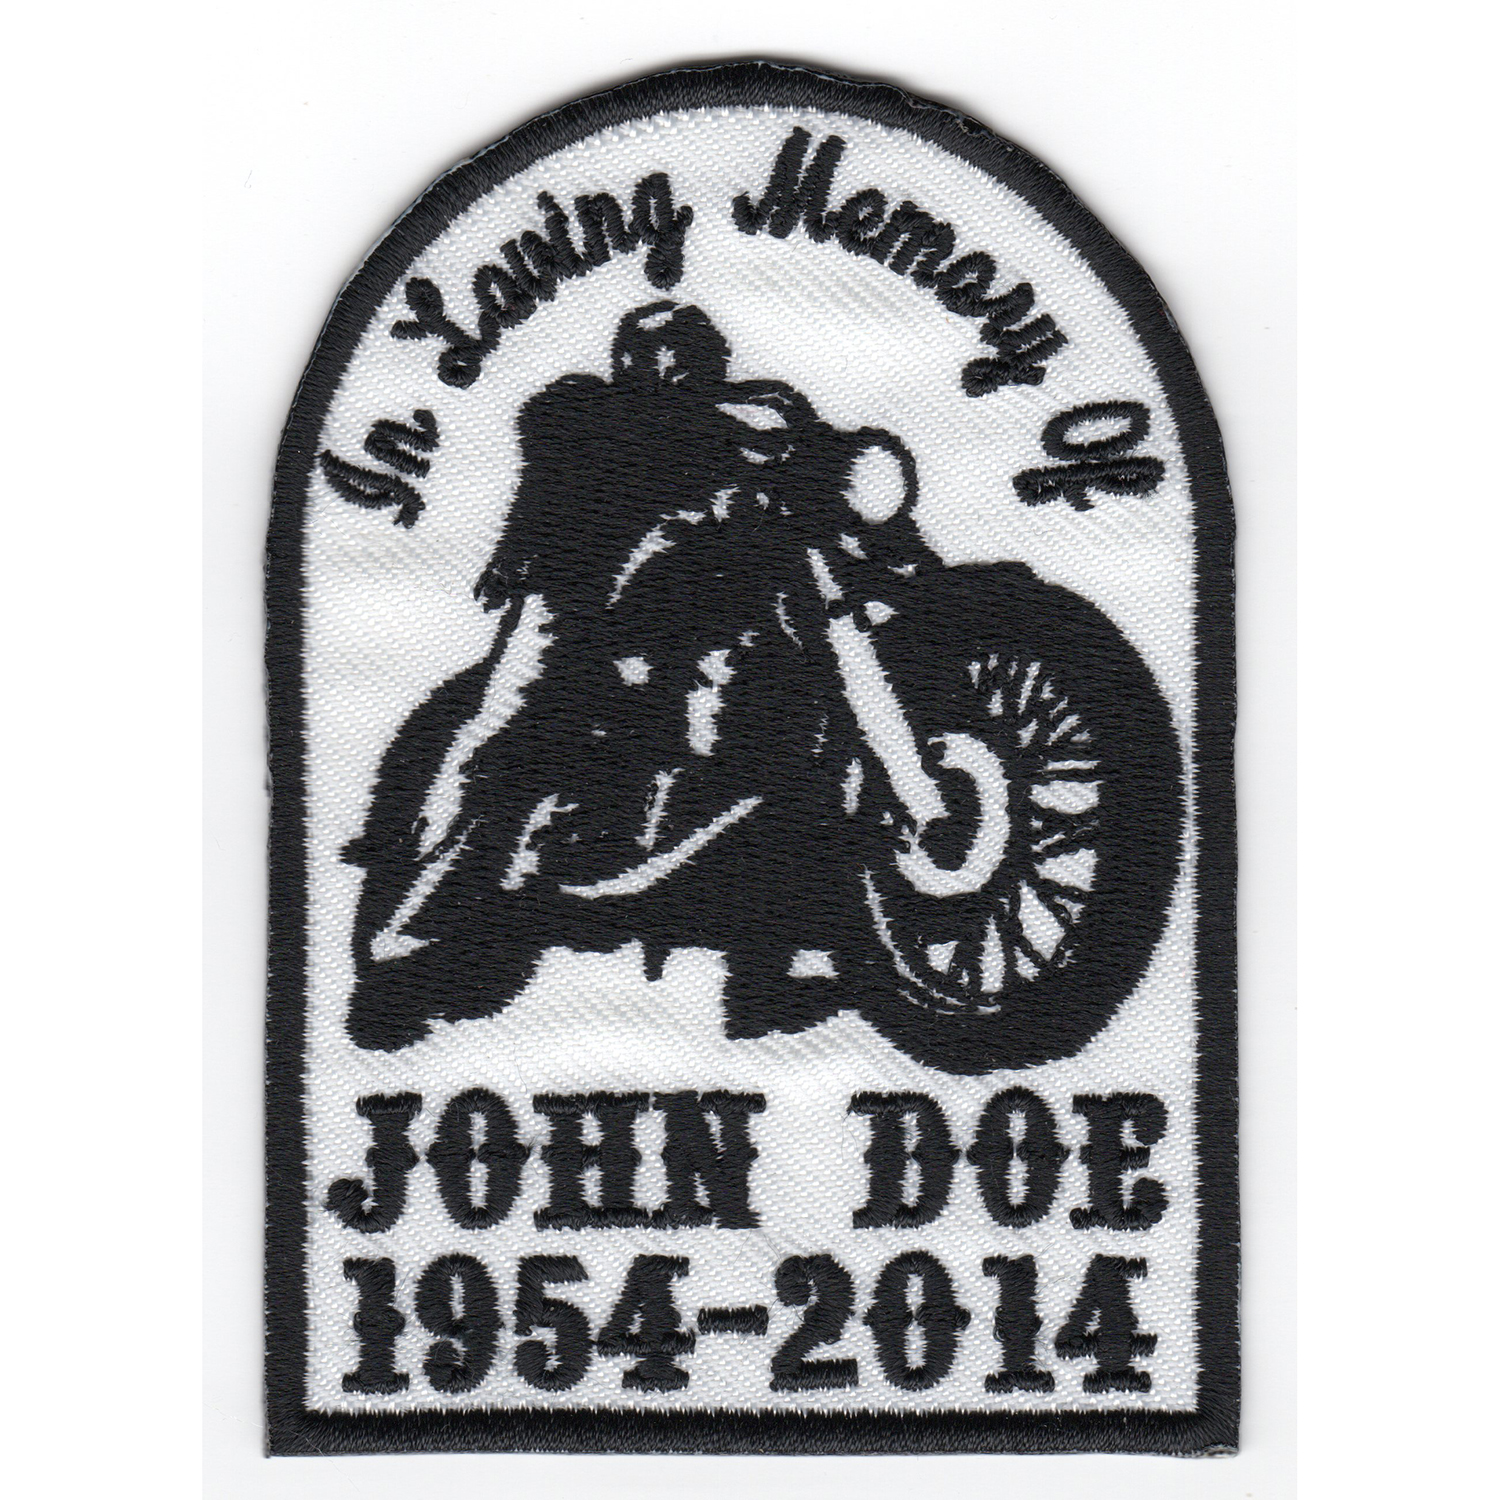 In Loving Memory Of ... Custom patch